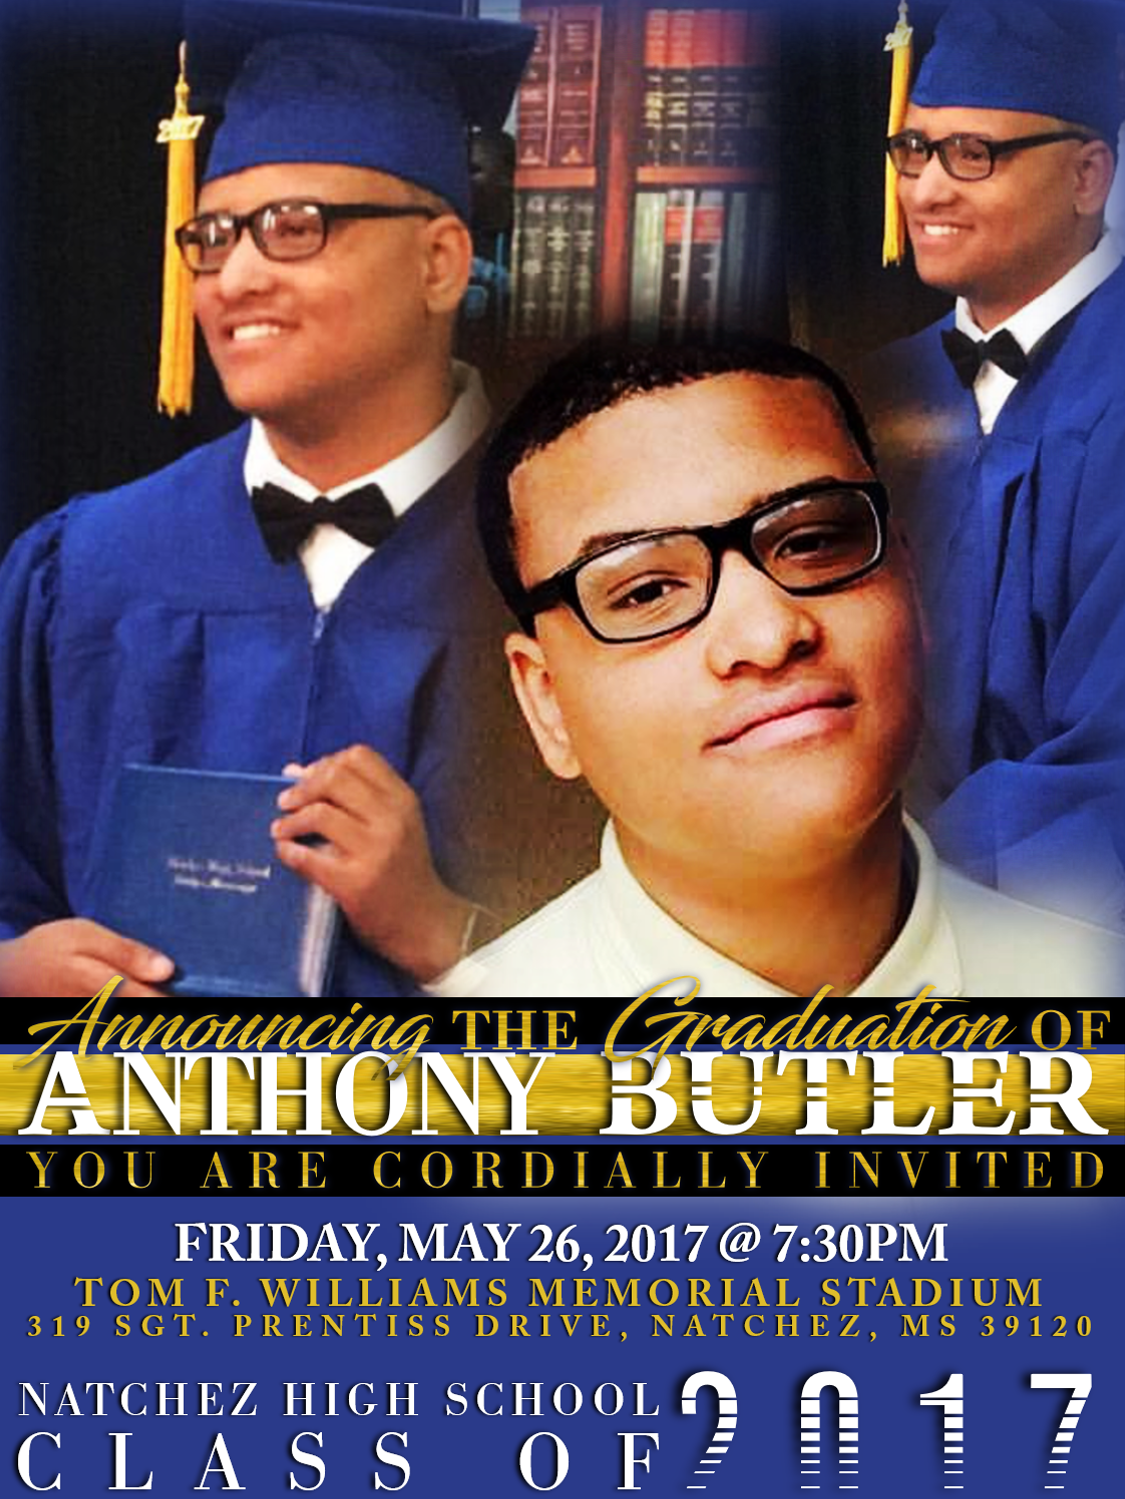 Graduation Invitation. Anthony.revised3